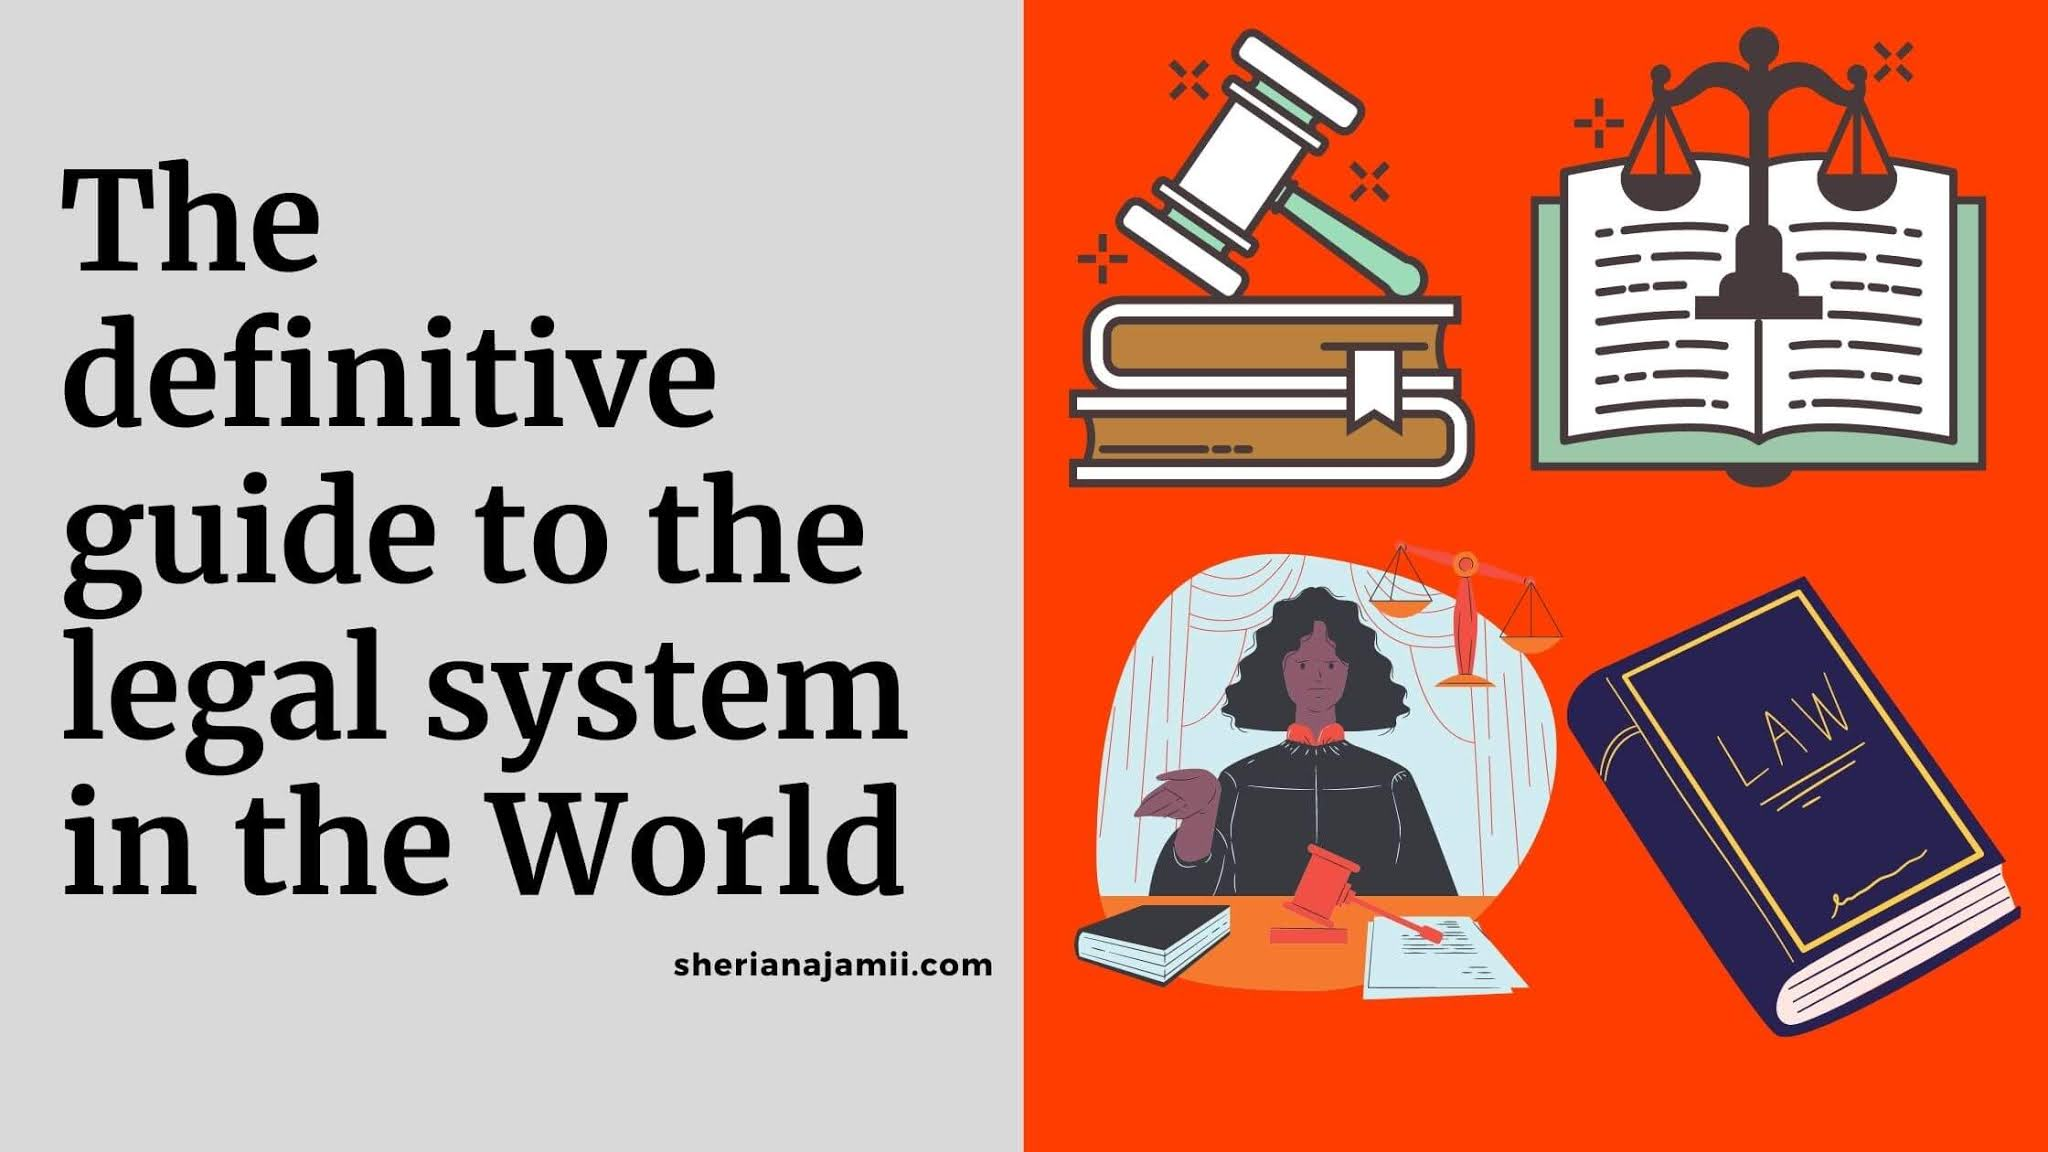 legal system, types of legal system, common law system, civil law system, equity, socialist legal system